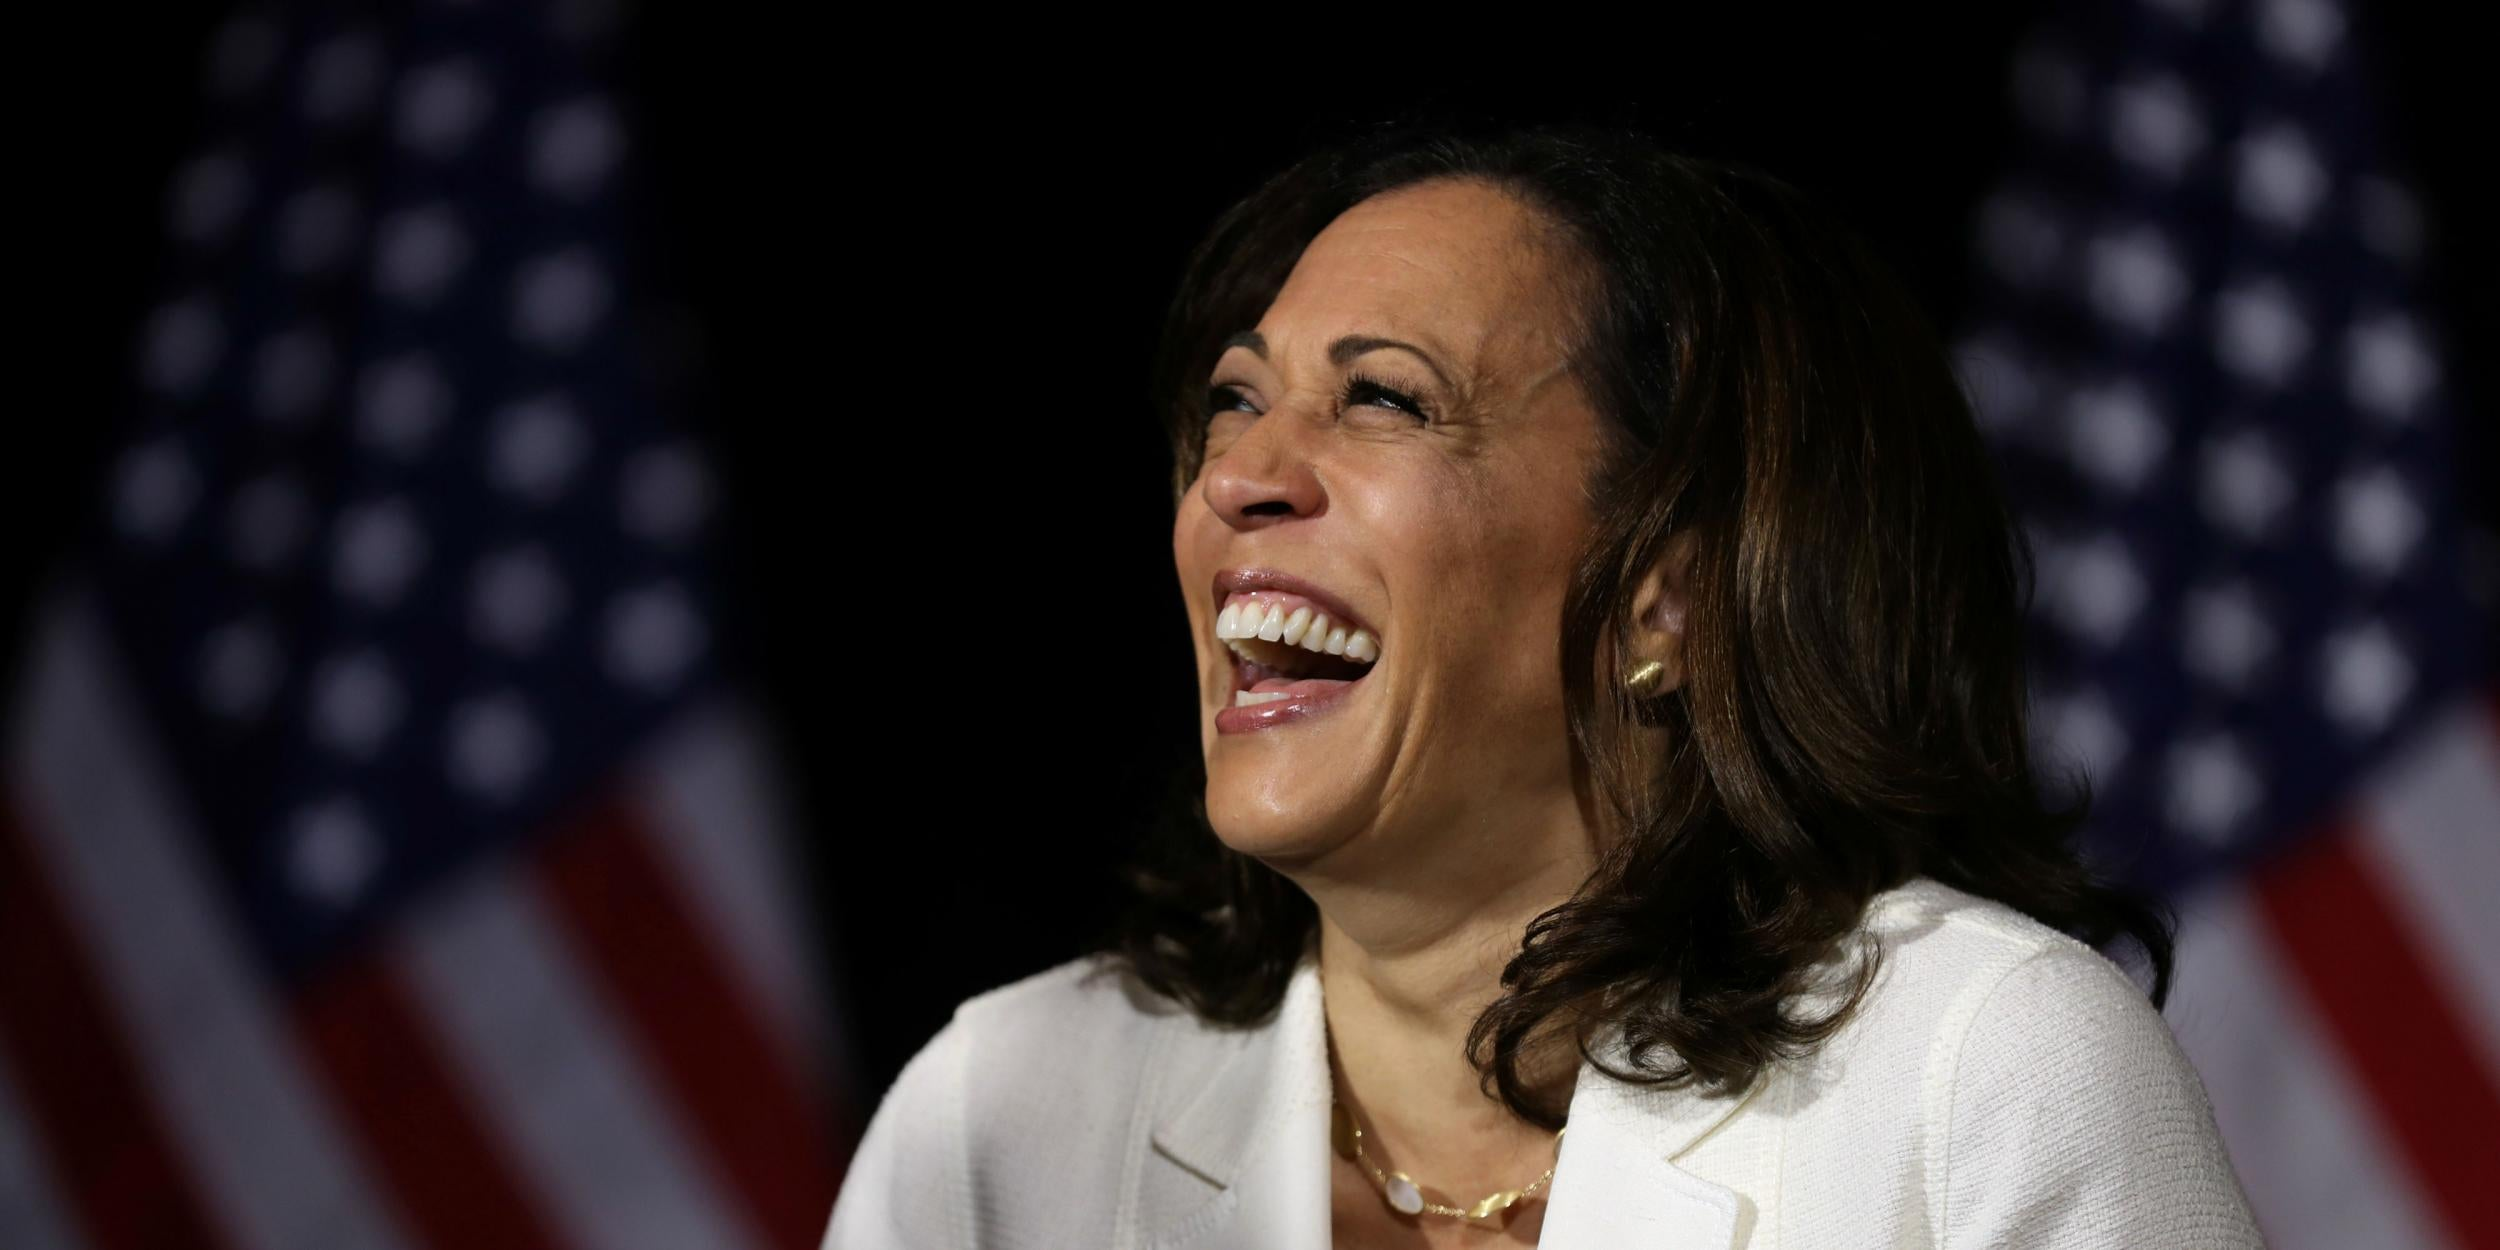 This is the week when Kamala Harris stopped being a serious contender for president